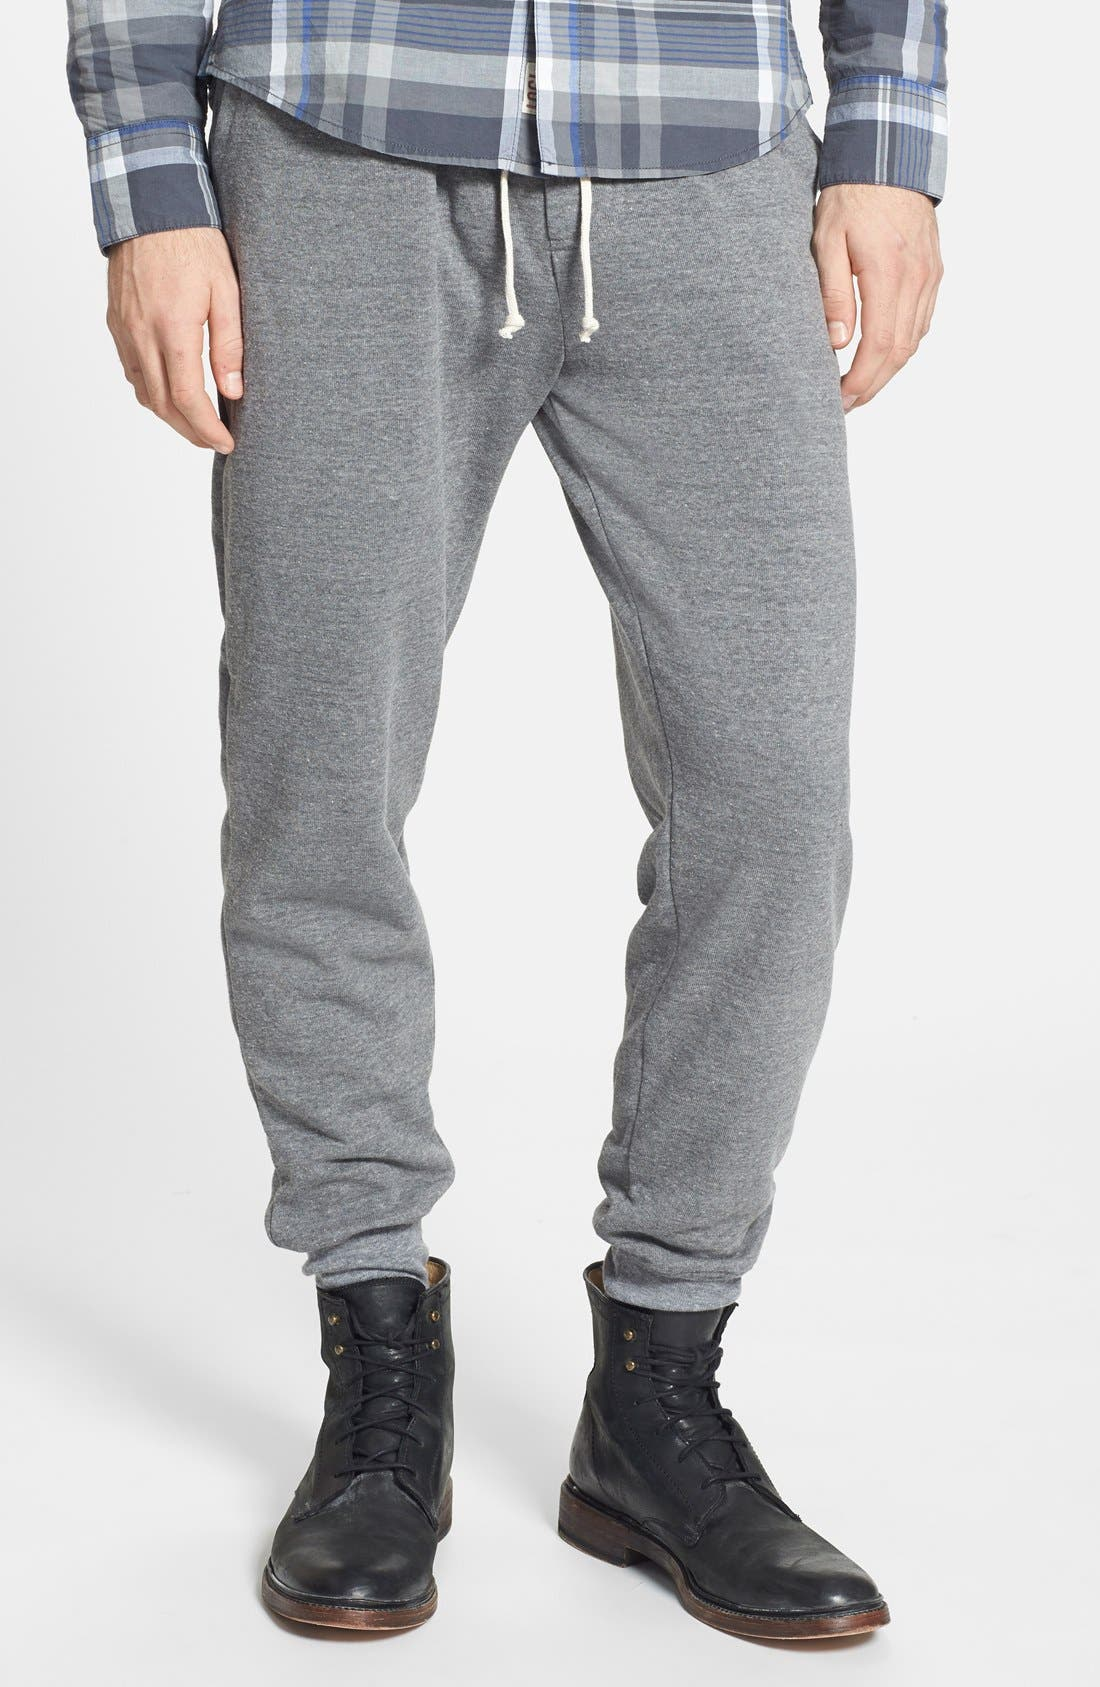 'Dodgeball' Eco Fleece Sweatpants,                         Main,                         color, Grey